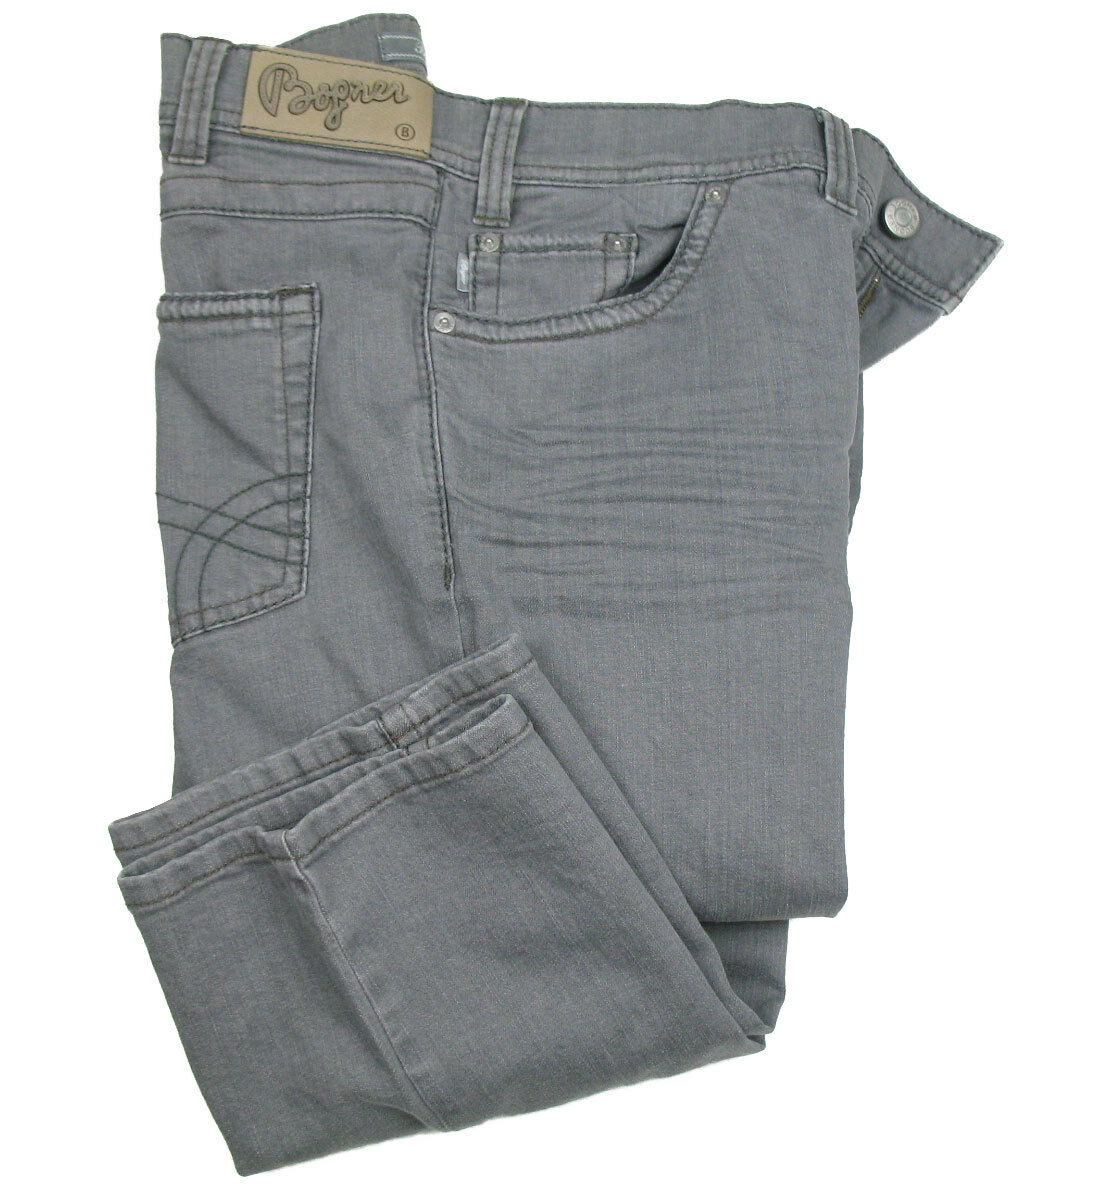 BOGNER Jeans VEGA-G1 in 40 34 ( 110 ) grey aus mittelstarkem Stretch-Denim